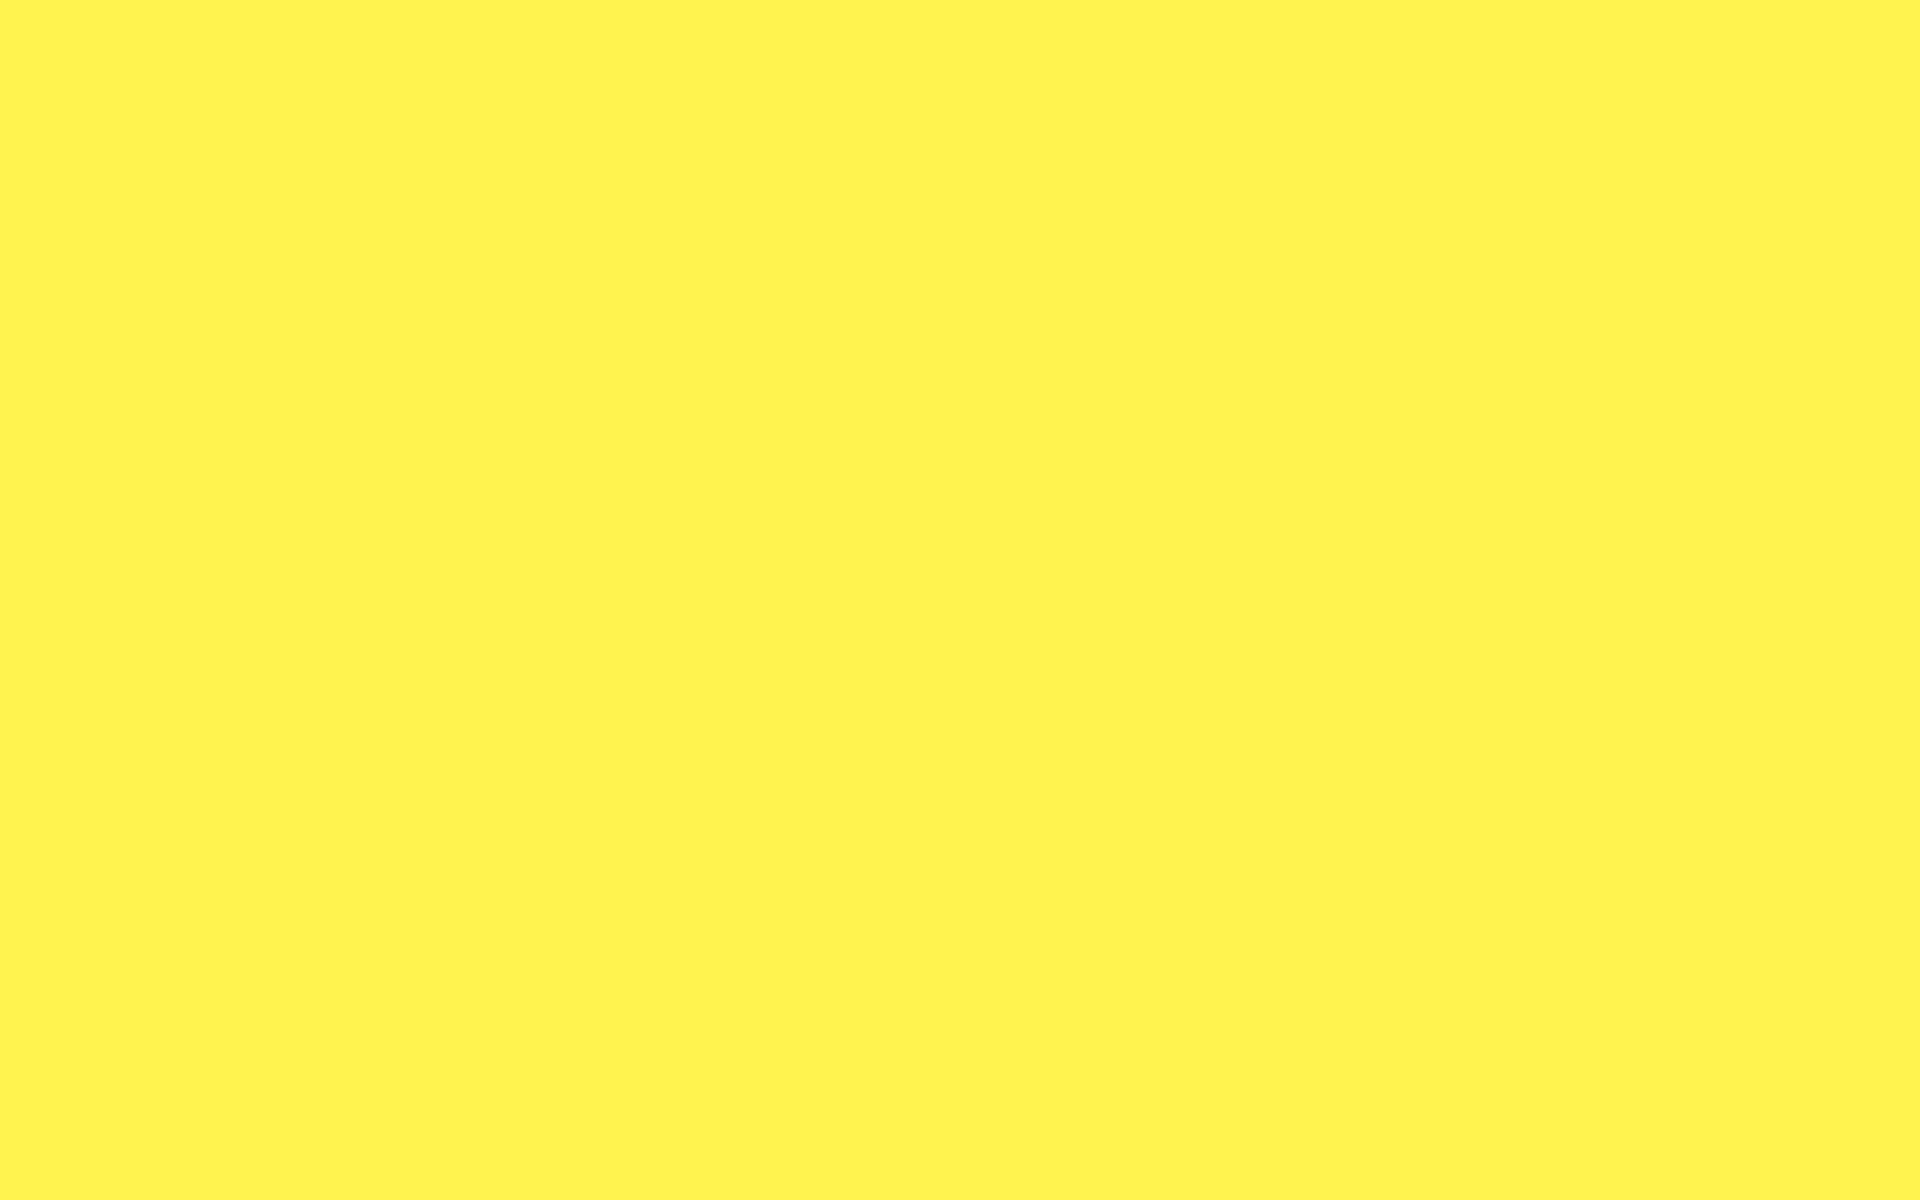 1920x1200 Lemon Yellow Solid Color Background